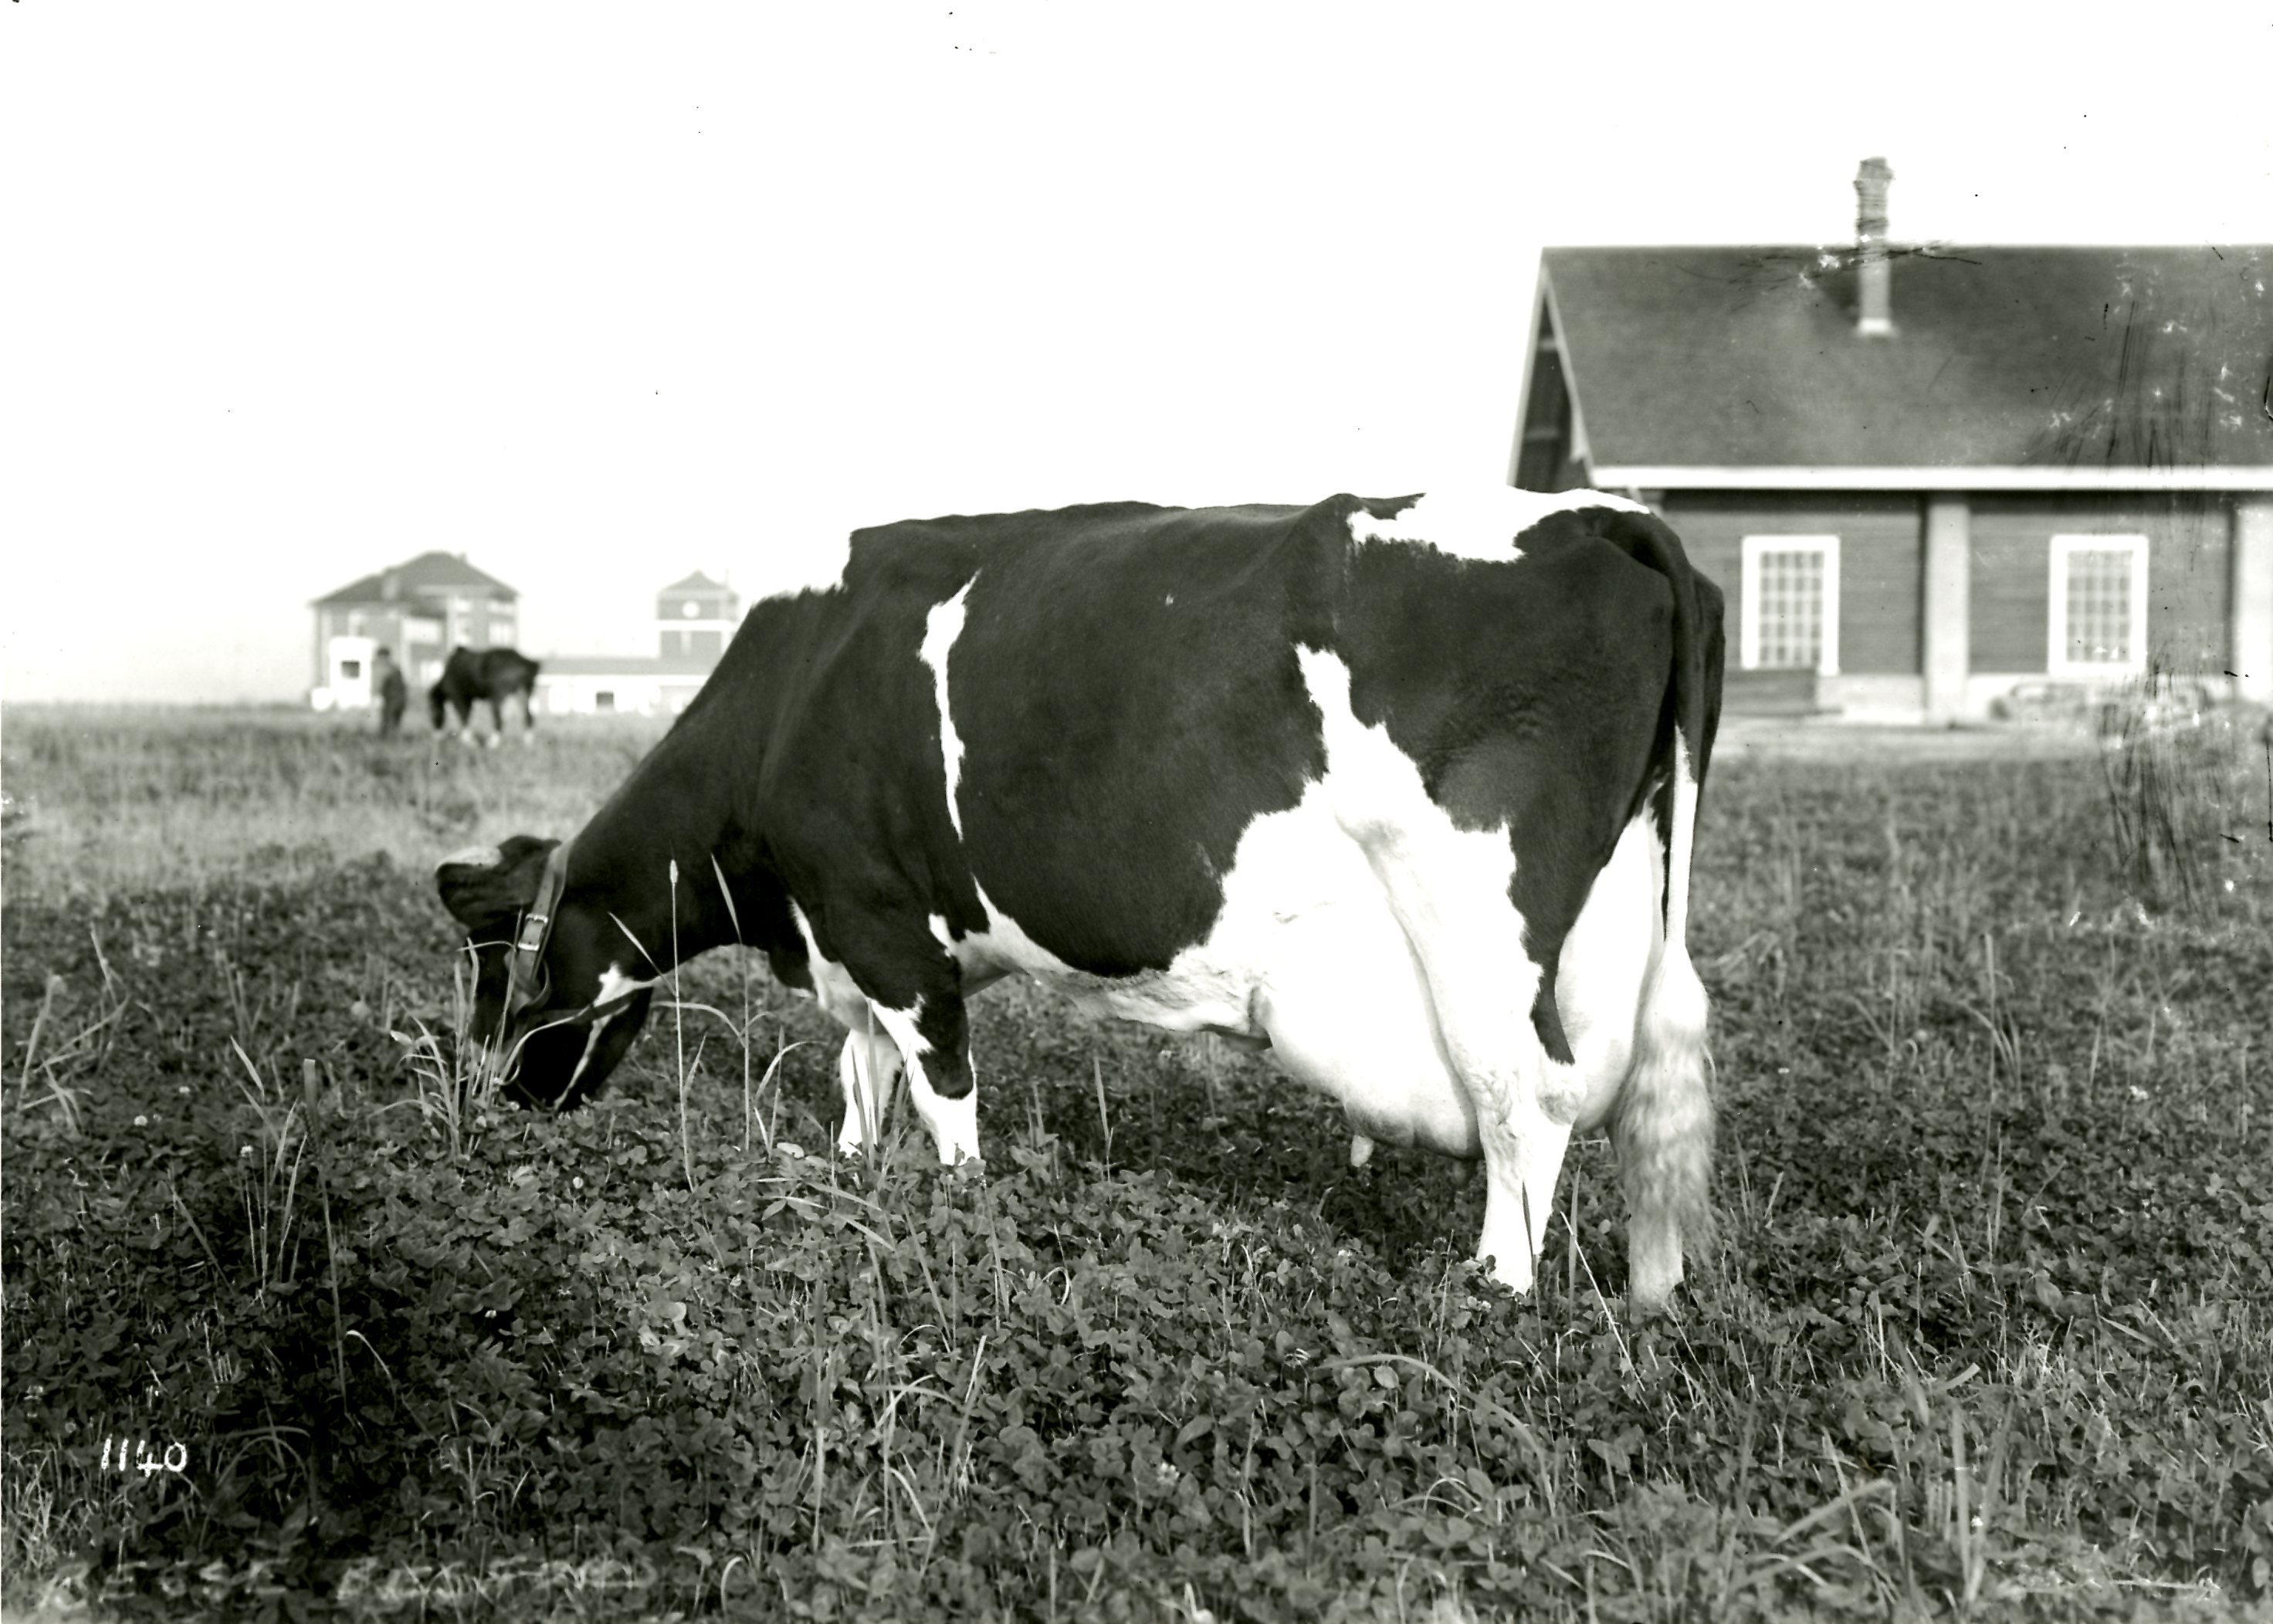 Besse Besford, Champion Milk Producer, Circa 1912 (JPG) Opens in new window